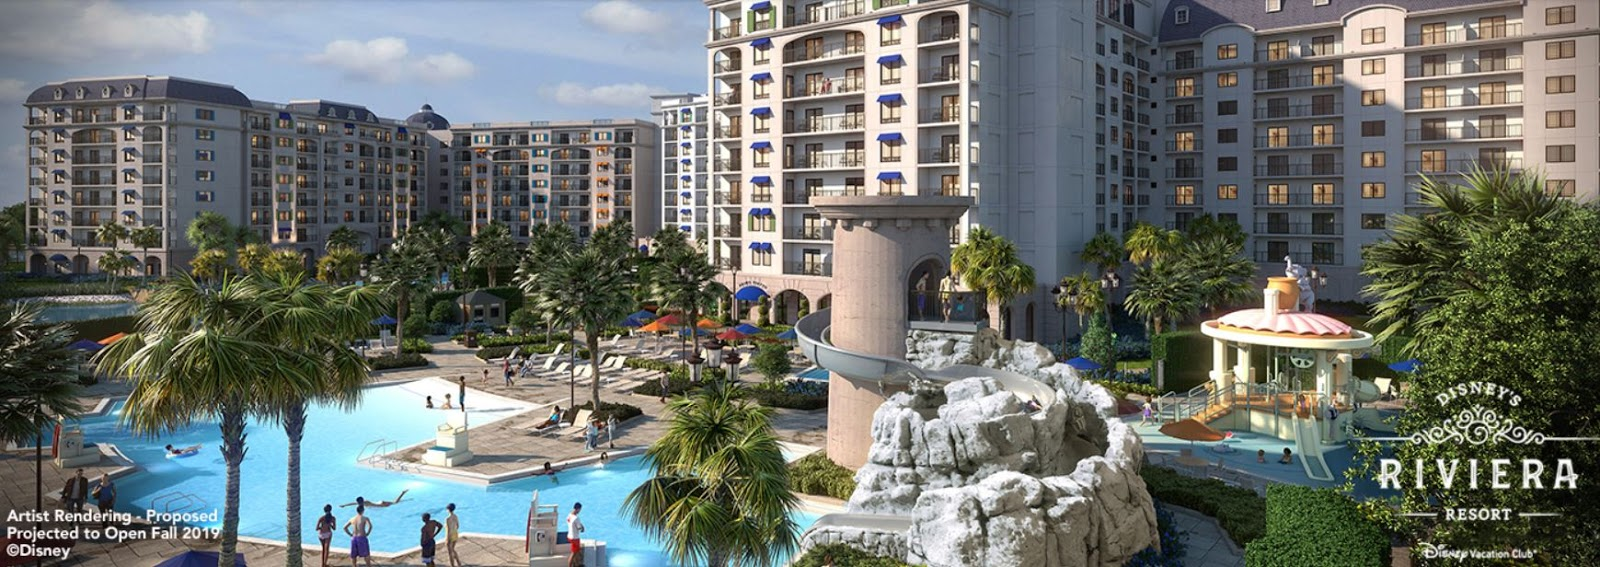 Disney Contests and Sweepstakes: Disney's Riviera Resort